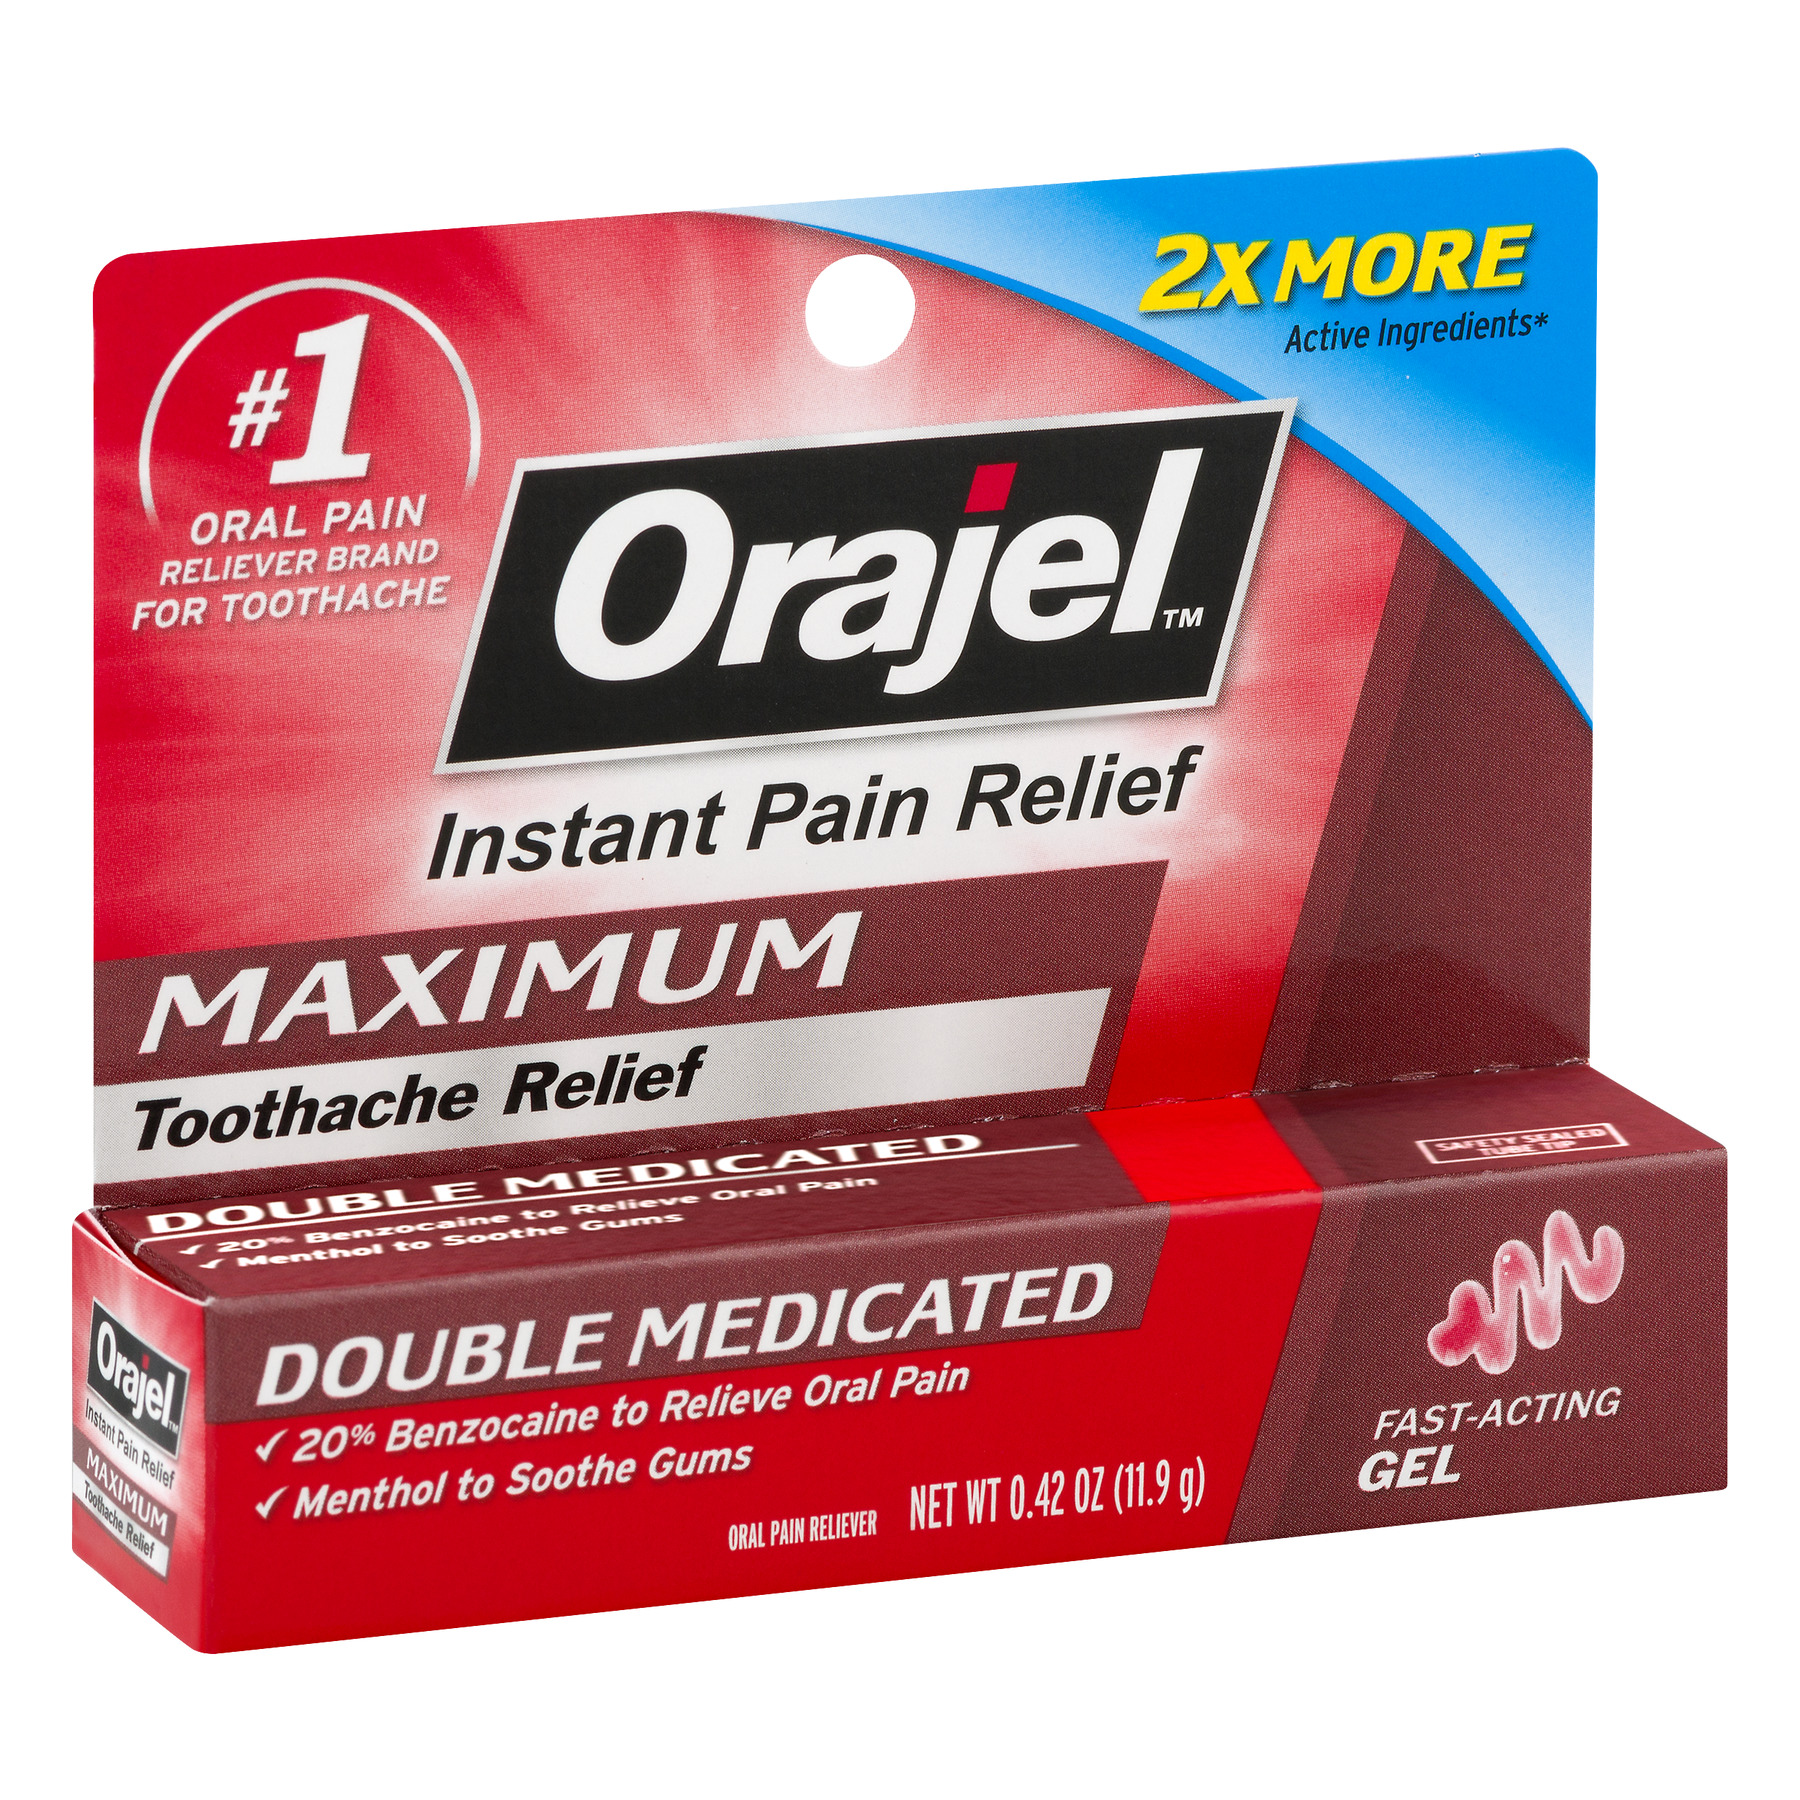 Orajel Maximum Toothache Relief Double Medicated, 0.42 OZ